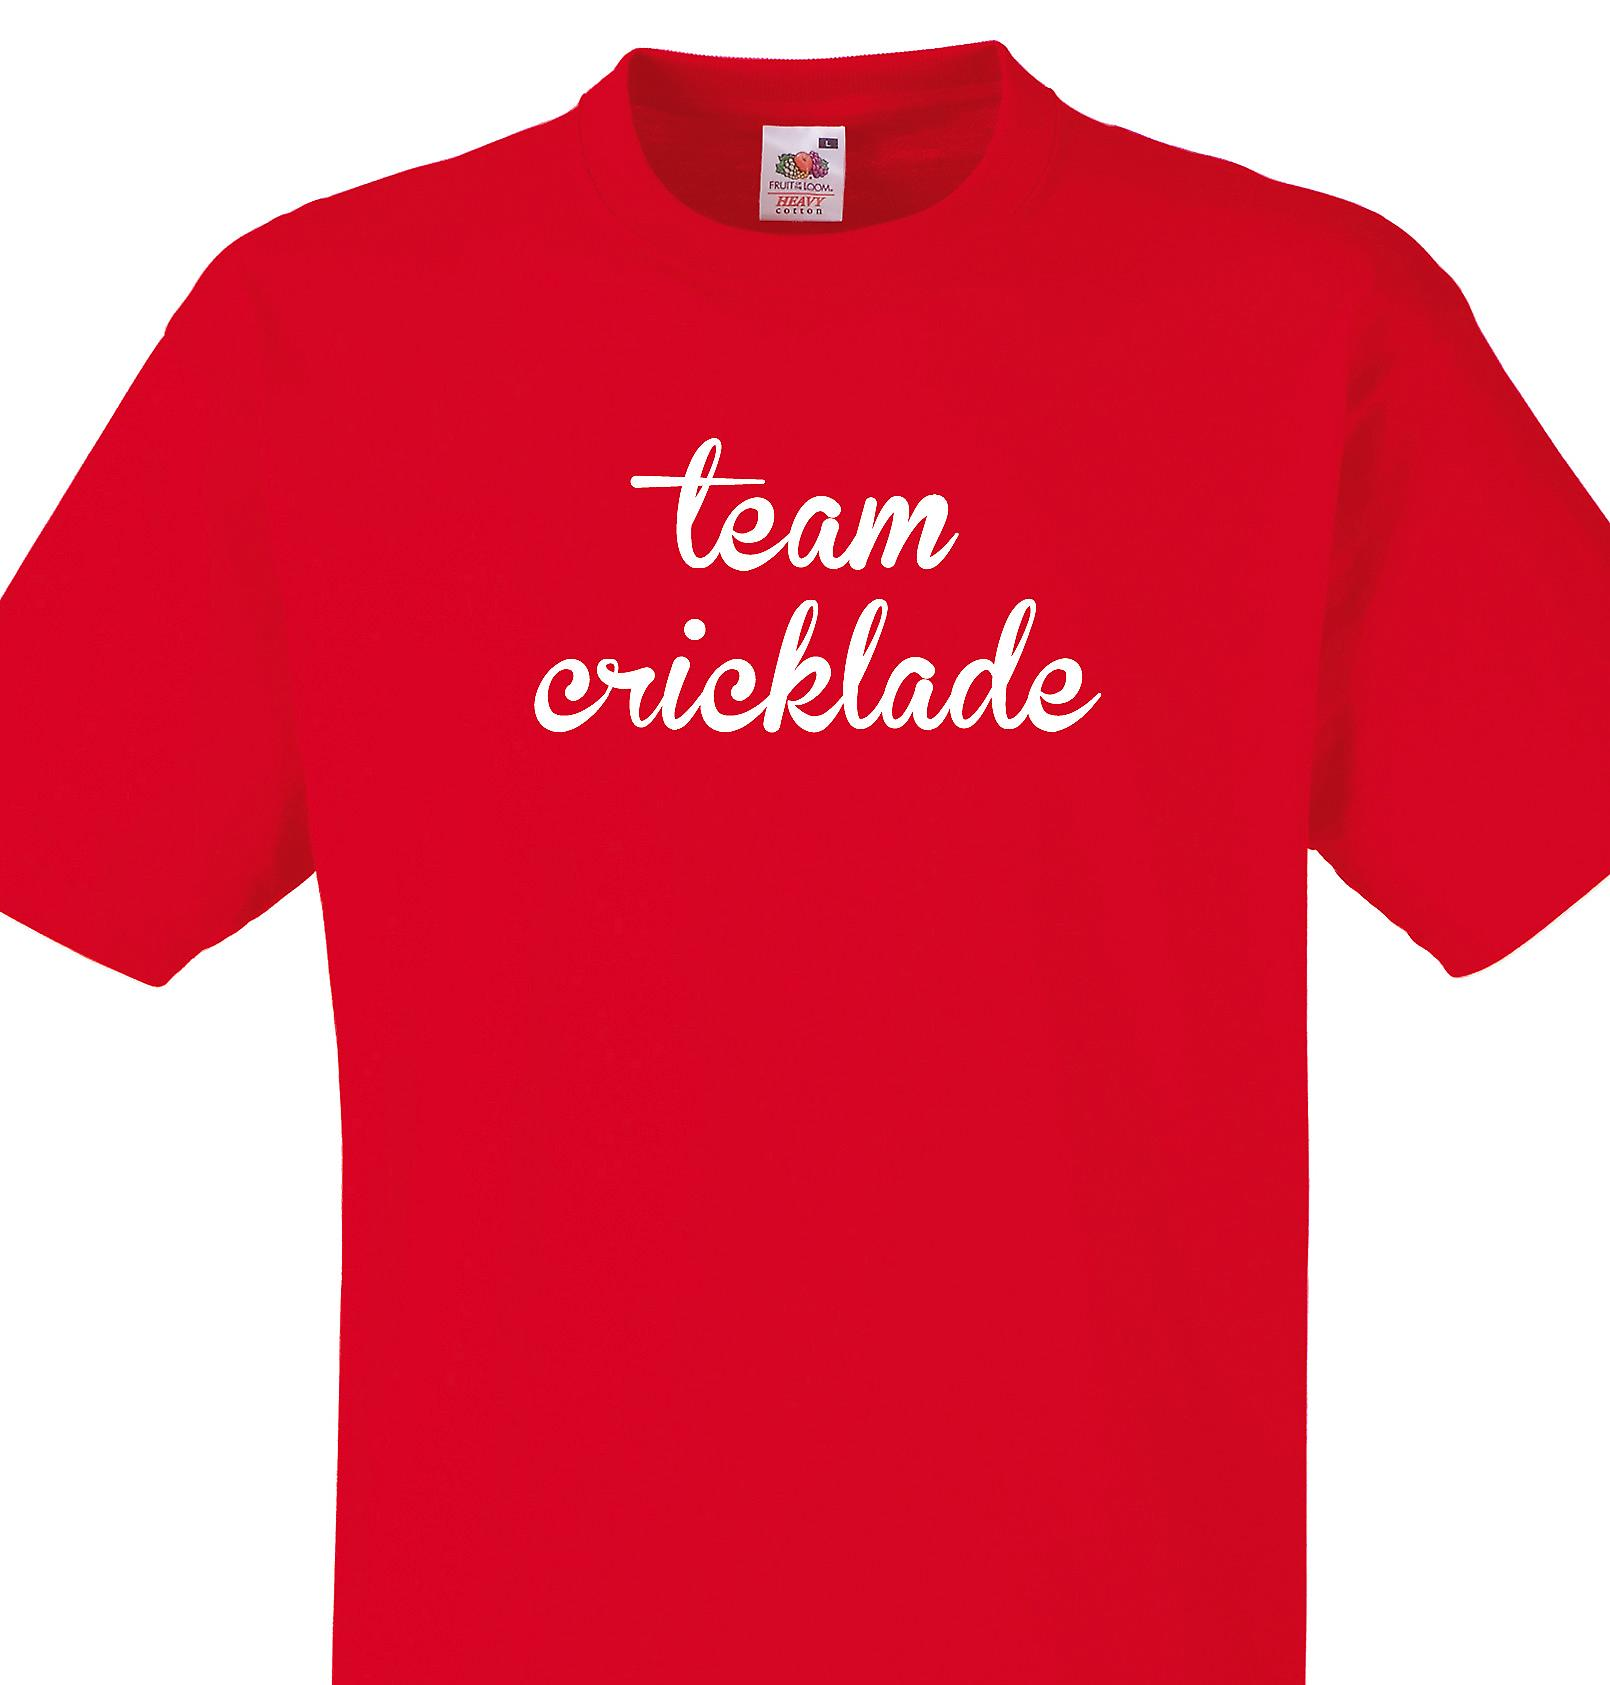 Team Cricklade Red T shirt